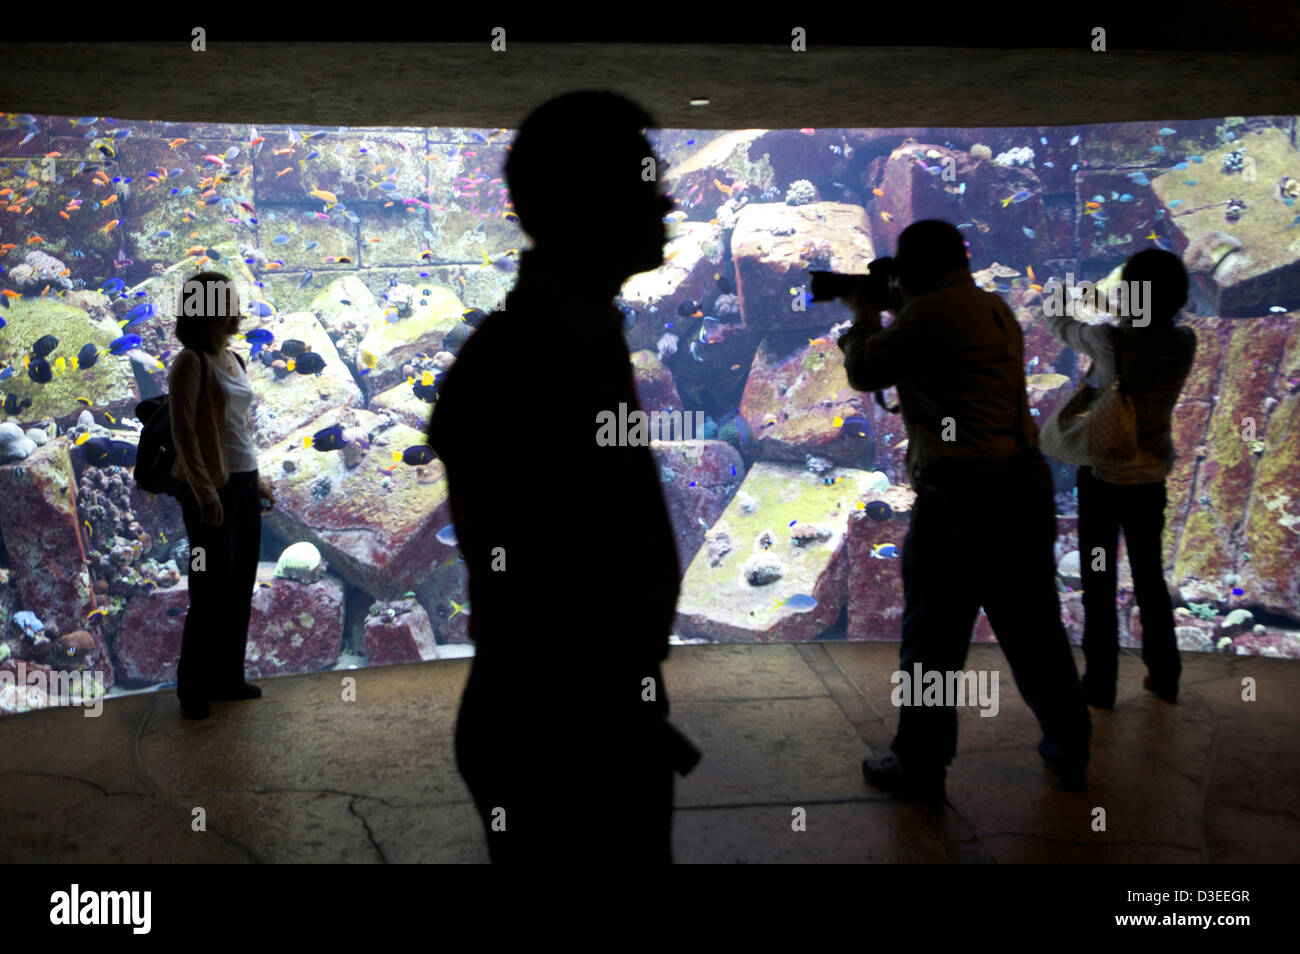 Fish aquarium in uae - Visitor Poses Next To The Aquarium Fish Tank In The Atlantis Palm Hotel Dubai Uae As A Photographer Takes A Picture